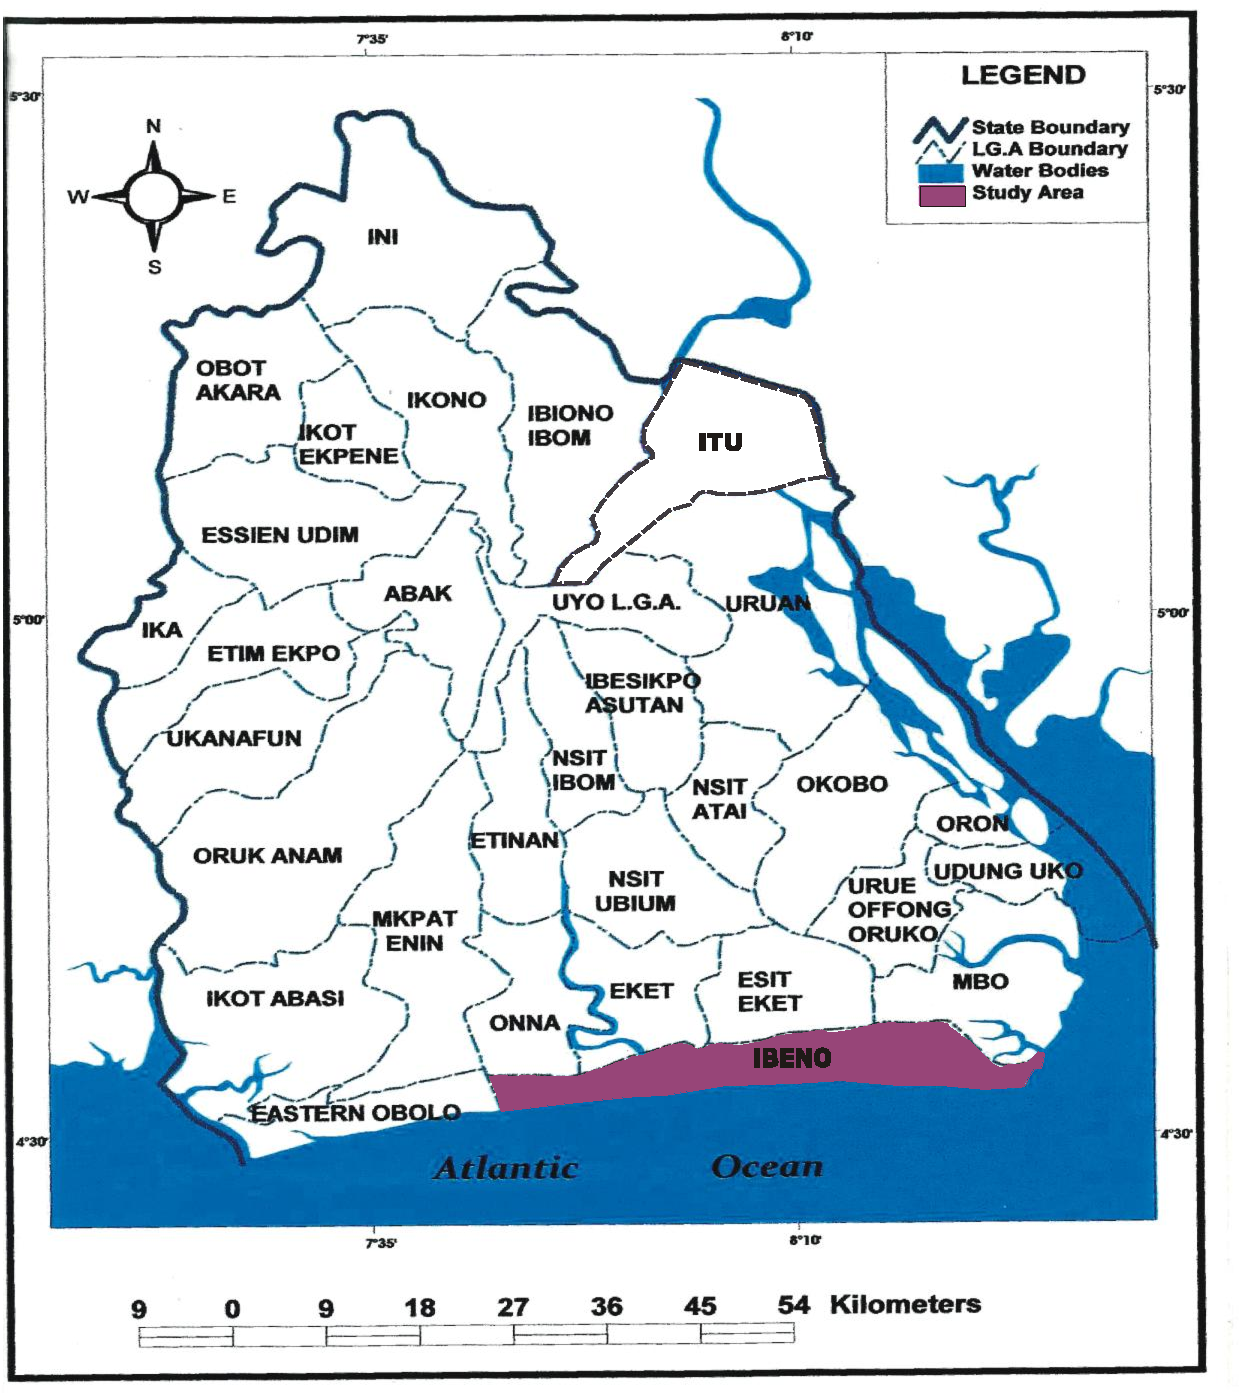 Figure 4 from Performance Evaluation of Activated Sludge ... on map of benue state, bayelsa state, ekiti state, enugu state, rivers state, edo state, map of plateau state, lagos state, map of karnataka state, delta state, map of borno state, benue state, map of nasarawa state, anambra state, map of enugu state, map of maharashtra state, ondo state, map of chihuahua state, map of kaduna state, map of aguascalientes state, map of montana state, adamawa state, map of ogun state, imo state, map of osun state, map of adamawa state, abia state, map of michigan state, map of jigawa state, map of jharkhand state, map of katsina state, kano state, ogun state, map of zamfara state, cross river state, map of imo state,